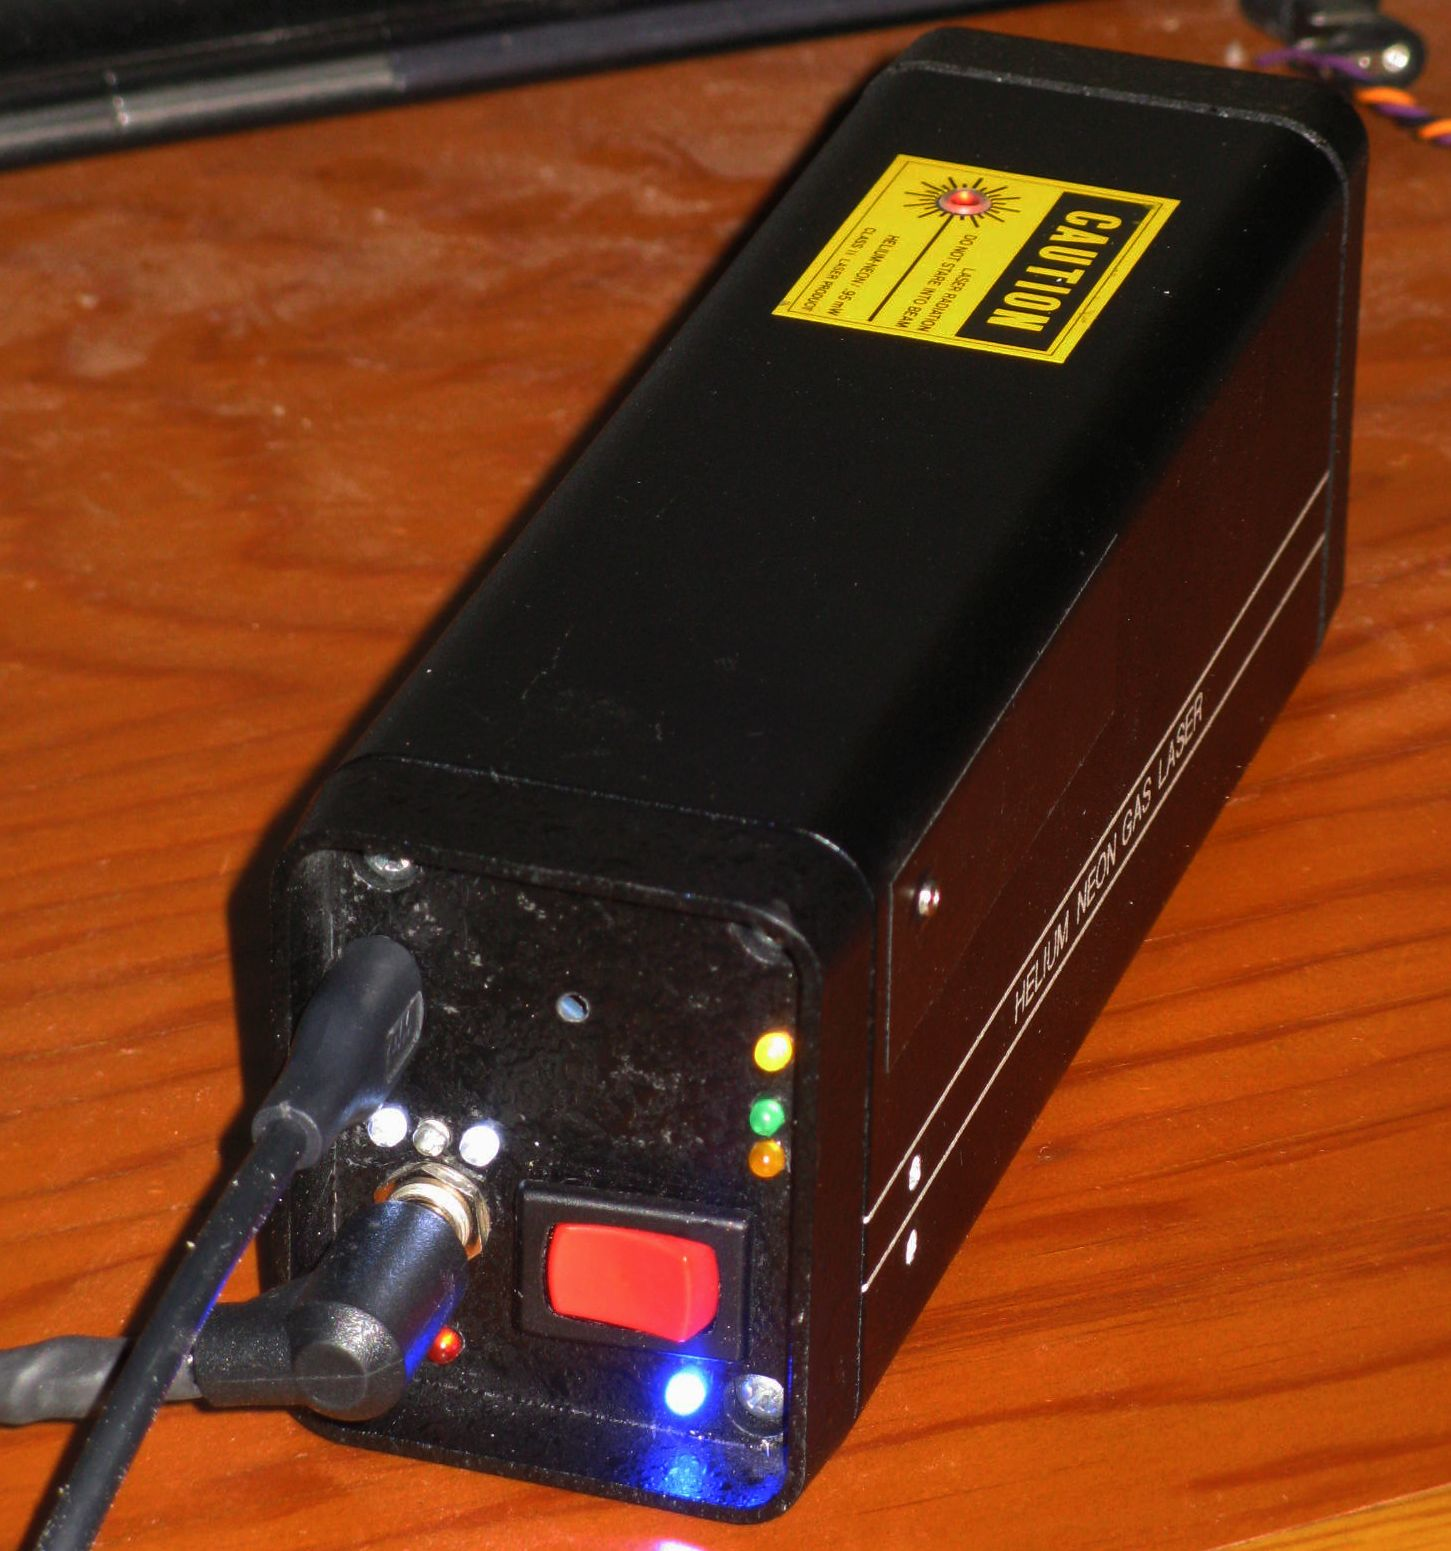 Sams Laser Faq Home Built Helium Neon Hene Furthermore Garage Door Opener Safety Sensor Wiring Plc Common Non Stabilied Lasers Being Just Barely Longer Than The 6 Inch Melles Griot Barcode Scanner Tube Inside A 9 Ohm Wire Wound Heater Covers